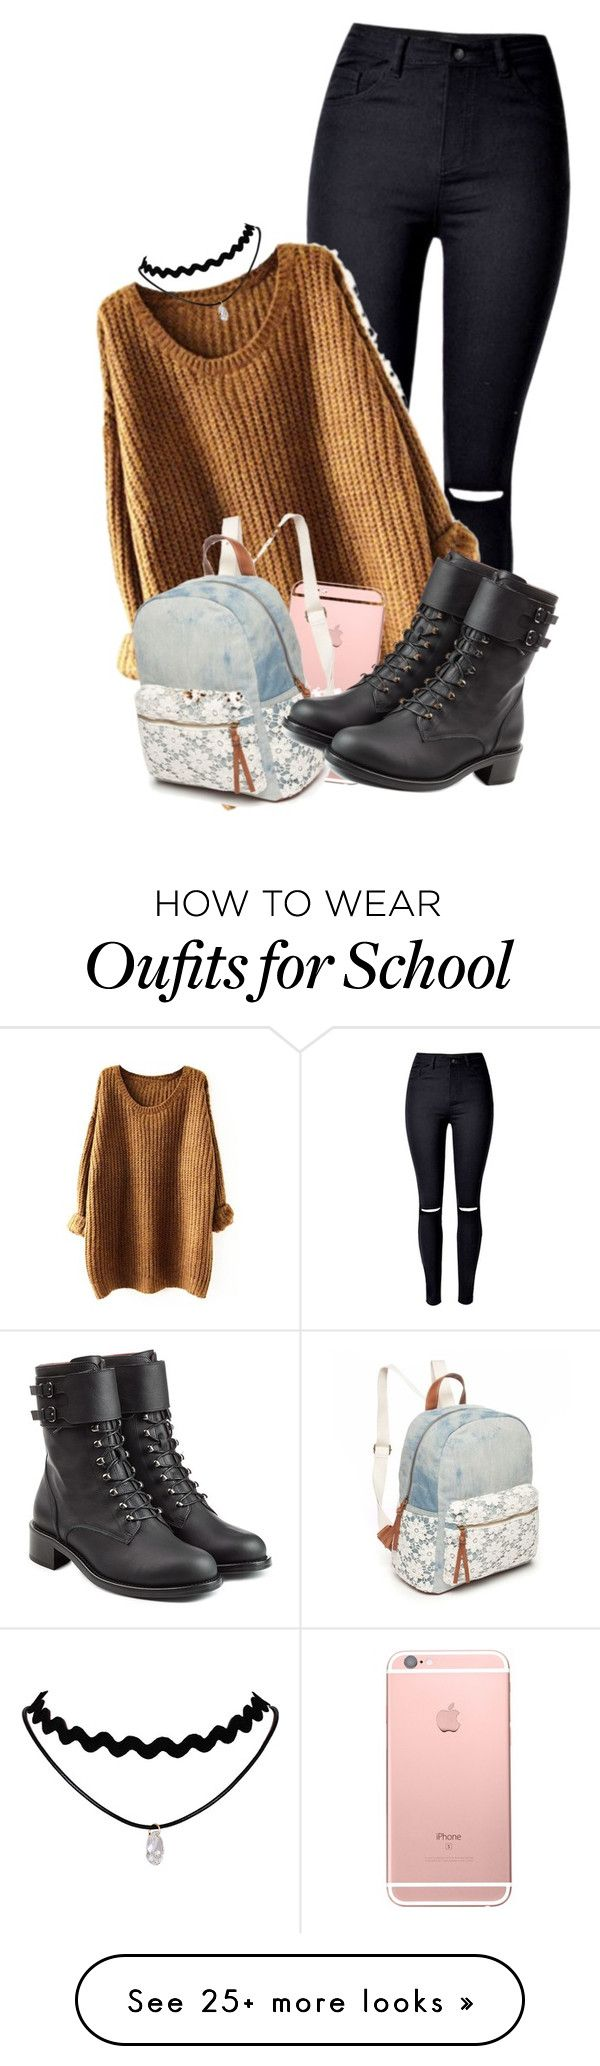 """""""Fall School Outfit"""" by mikkielaine on Polyvore featuring Red Camel and Philosophy di Lorenzo Serafini"""